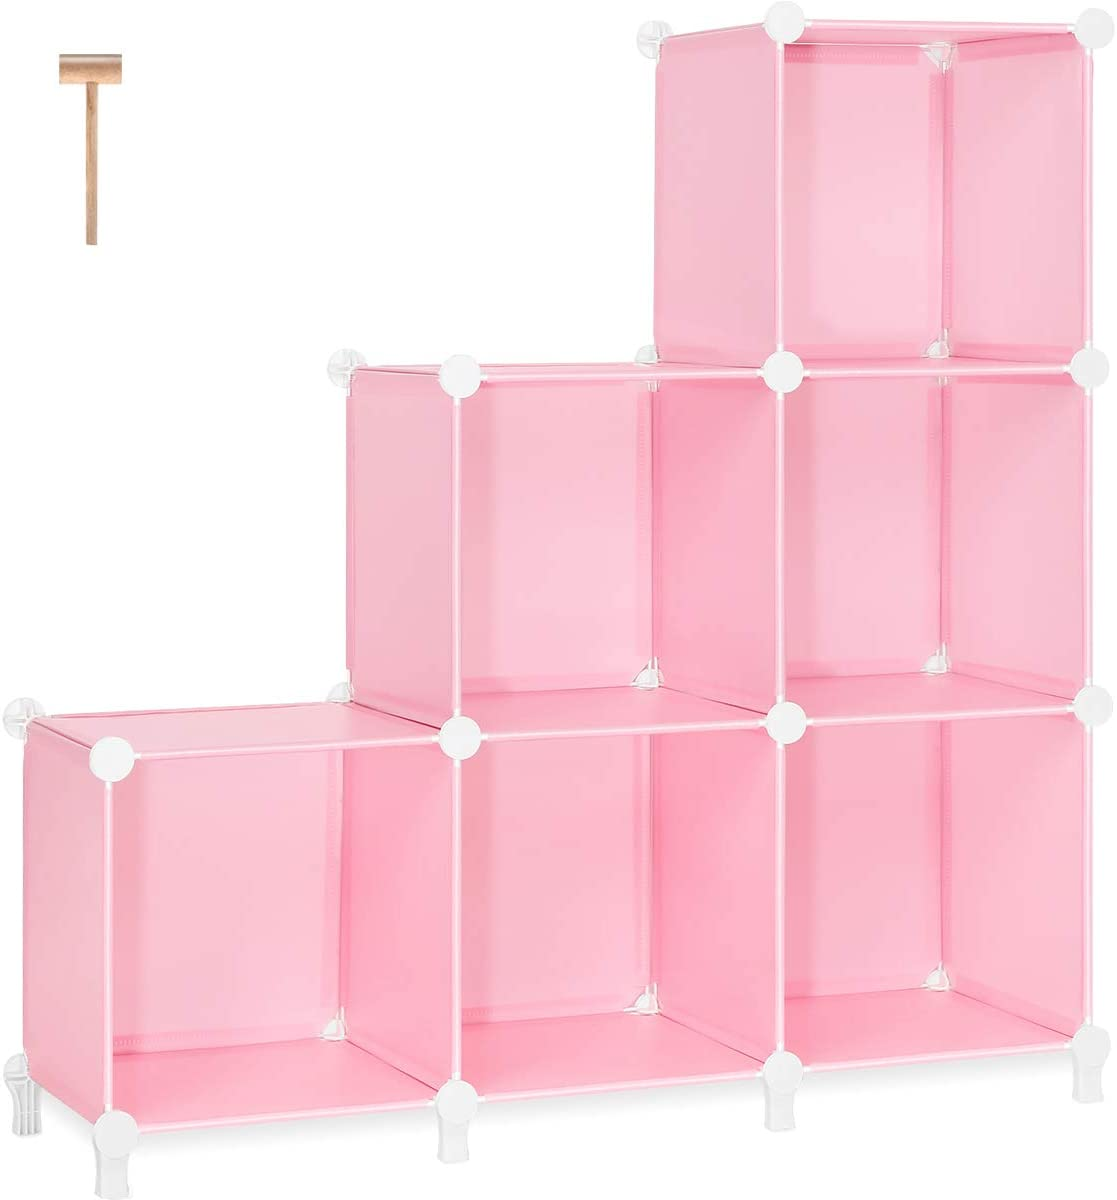 TomCare Cube Storage 6-Cube Closet Organizer Storage Shelves Cubes Organizer DIY Bookshelf Bookcase Plastic Cube Shelf Clothes Storage Organizer Shelves for Bedroom Living Room Office, Pink